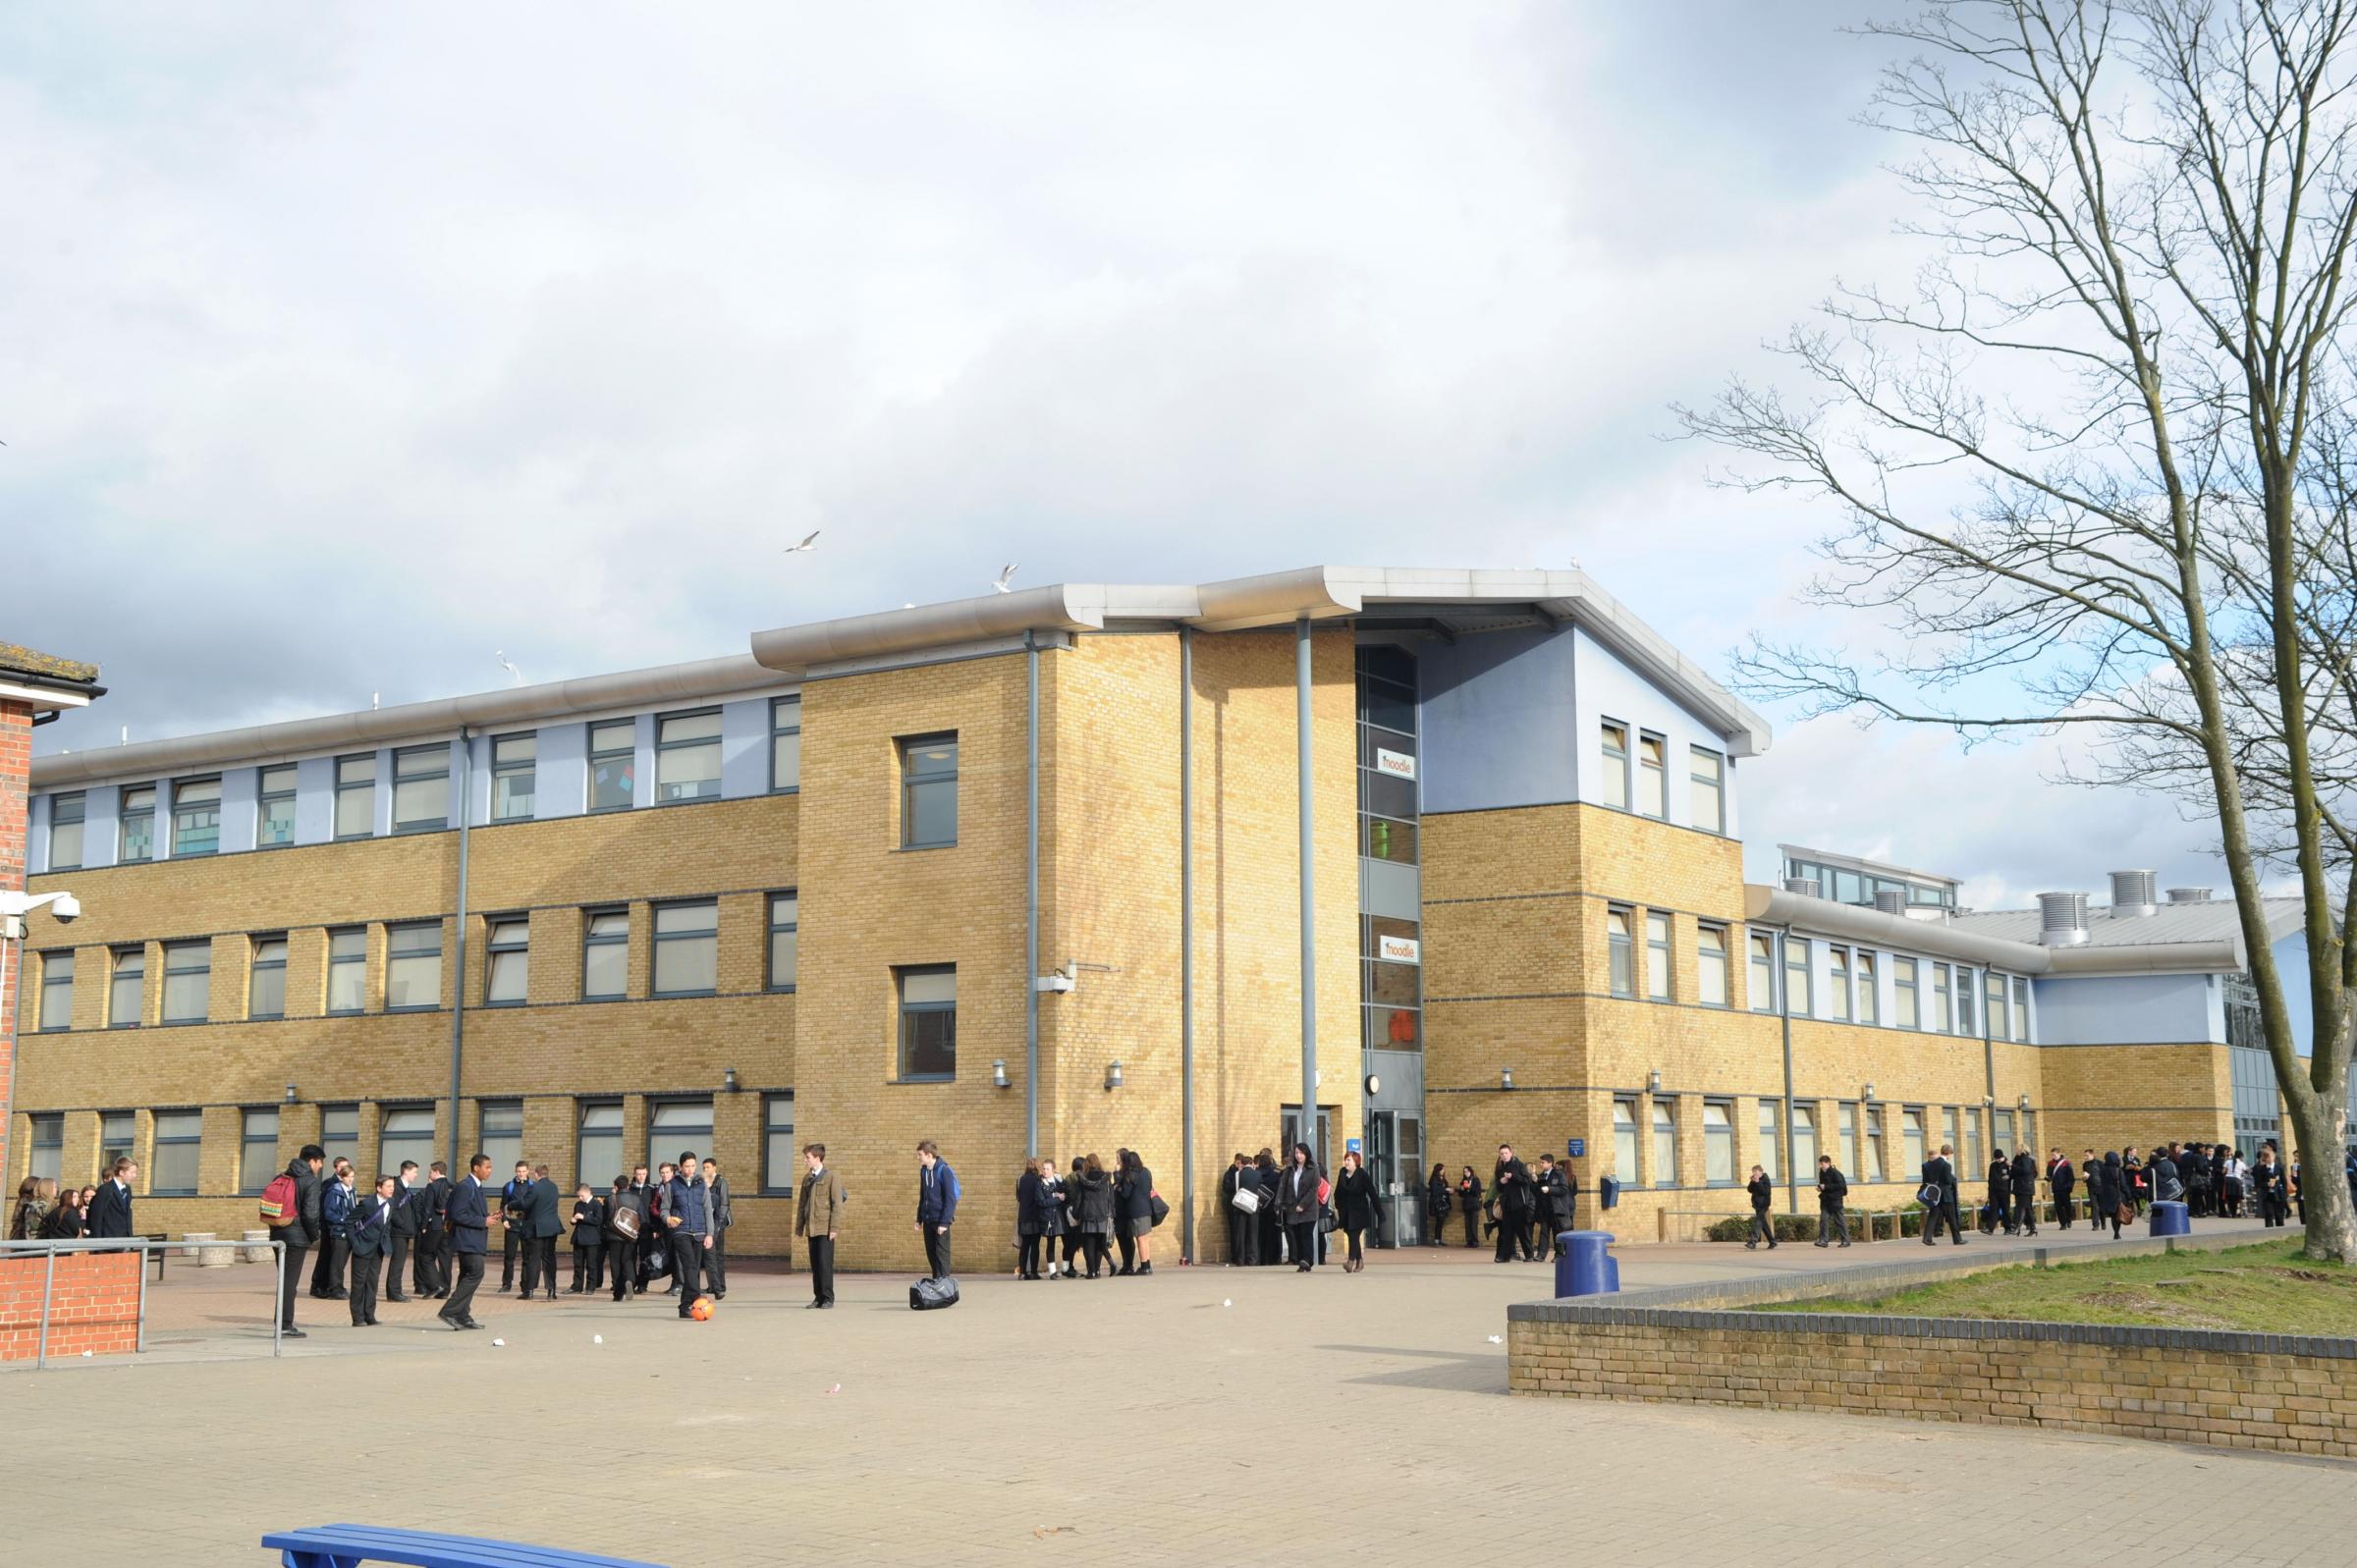 Bexleyheath Academy pupil cut with craft knife in playground prank